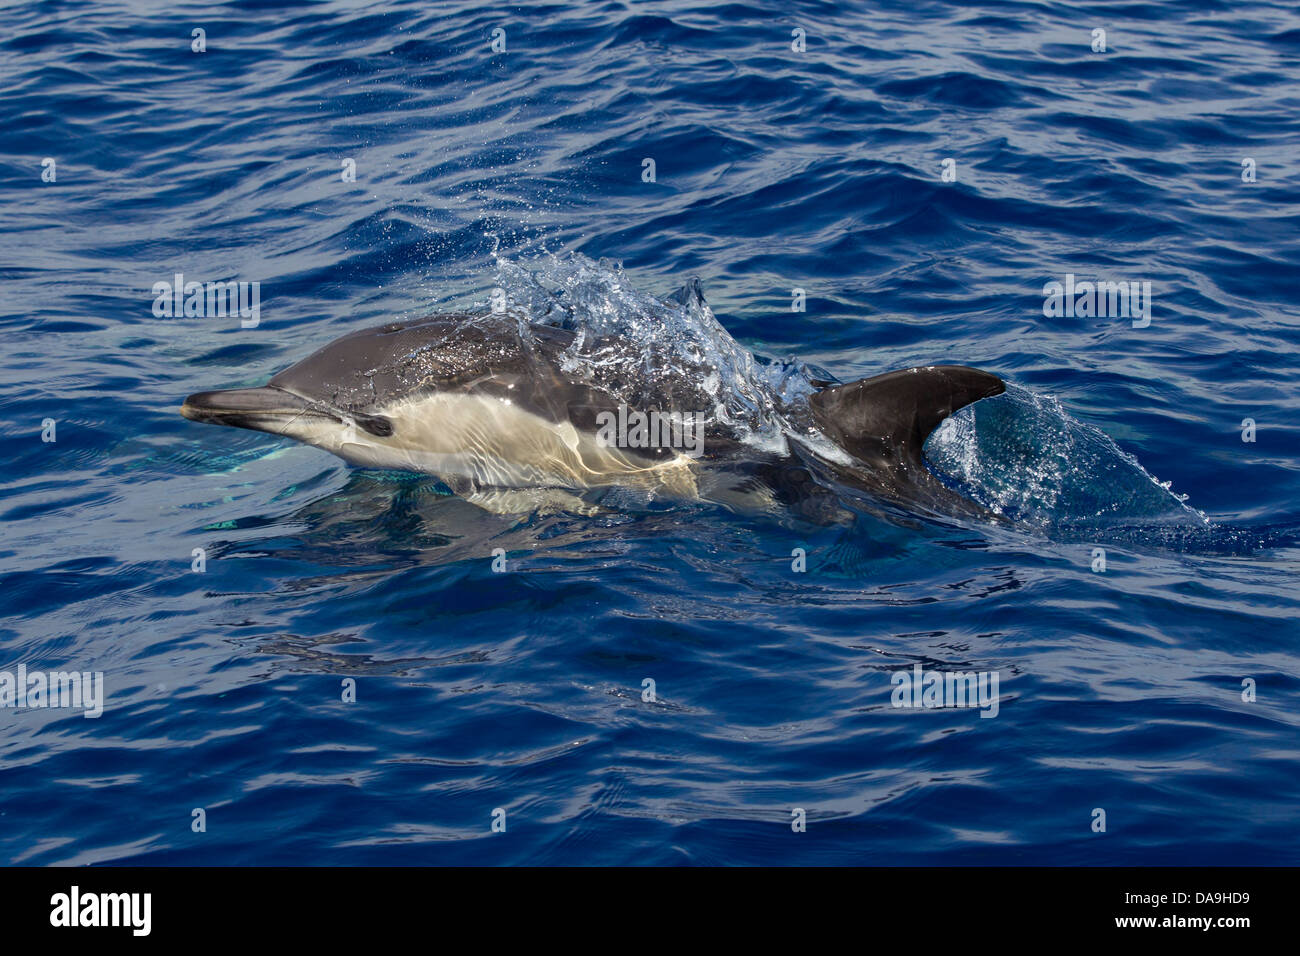 Gemeiner Delphin, Short-beaked Common Dolphin, Delphinus delphis, surfacing with eye visible, Lajes do Pico, Azores, - Stock Image